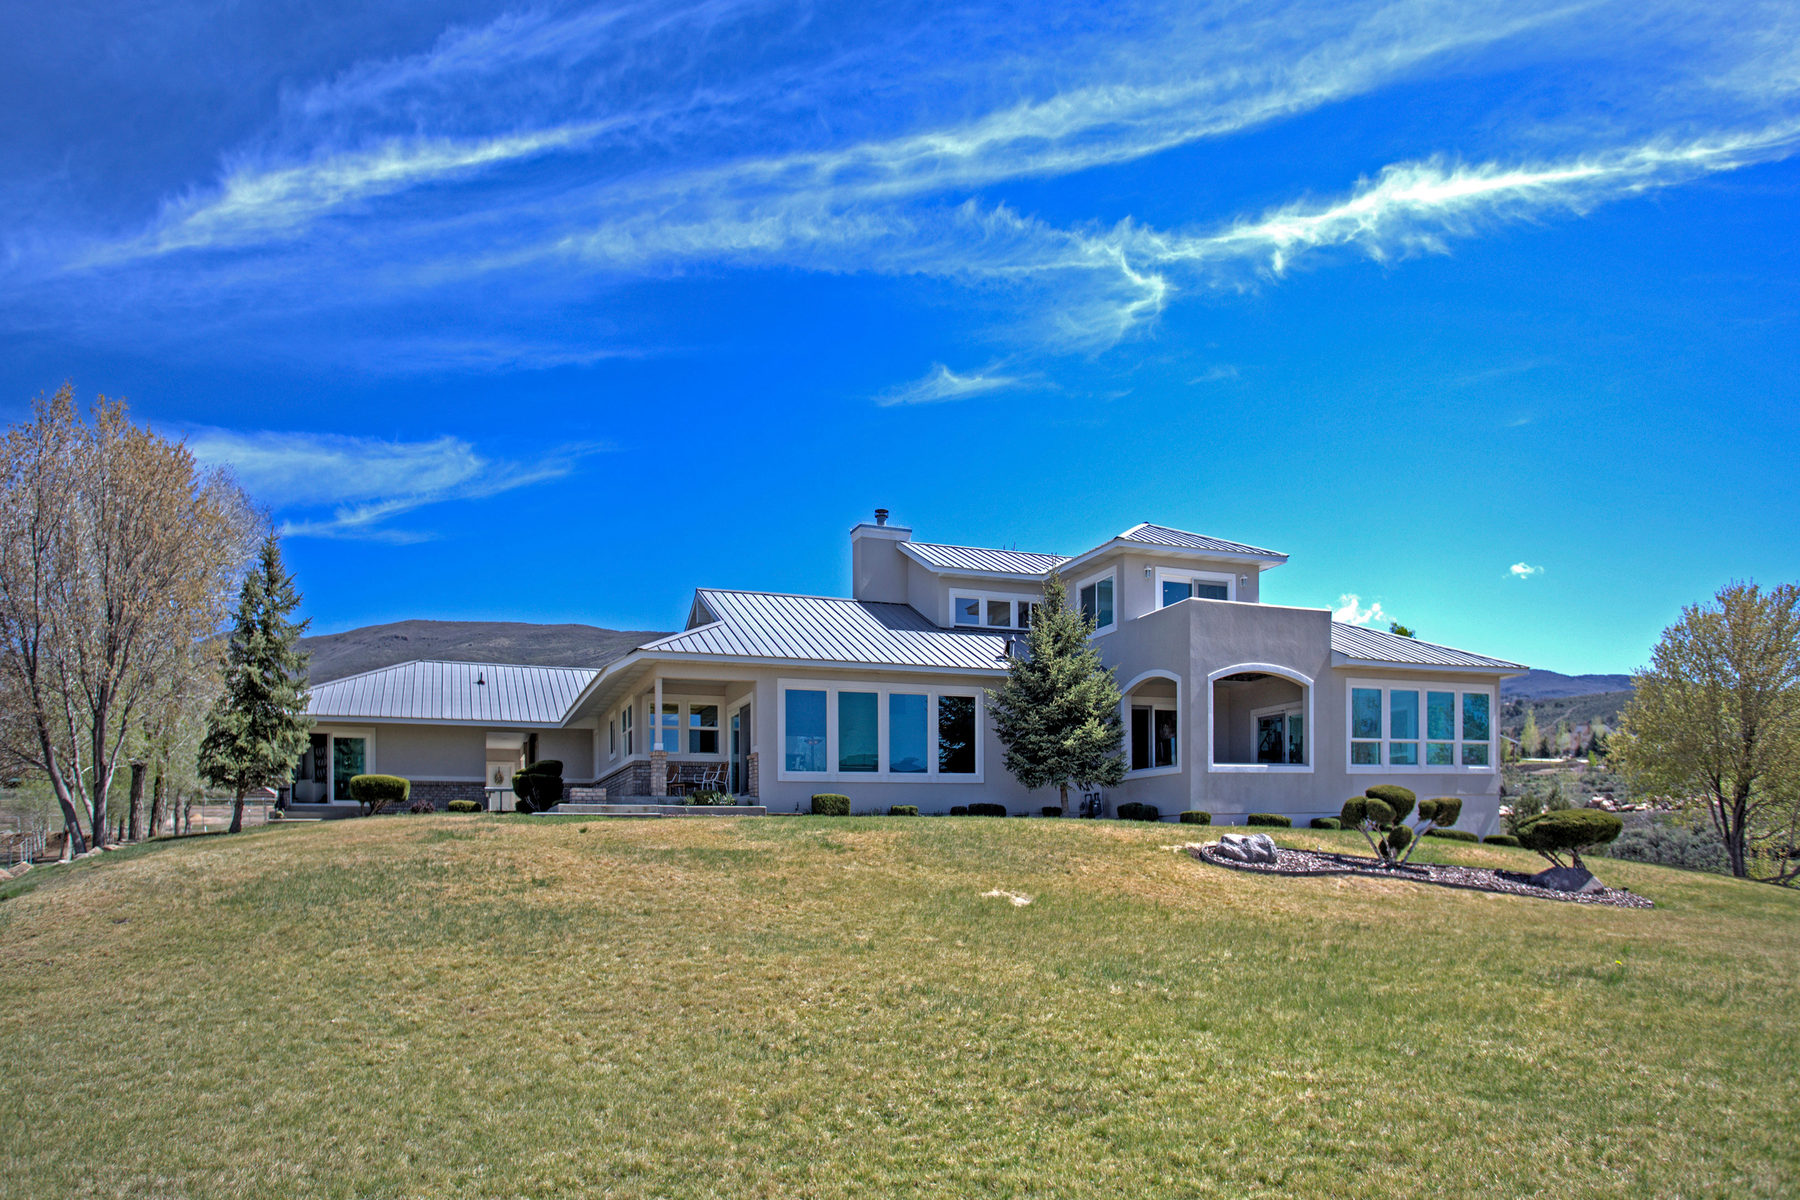 Villa per Vendita alle ore Majestic Views Included with this 5-Acre Horse Property 1465 East 1050 North Heber City, Utah 84032 Stati Uniti